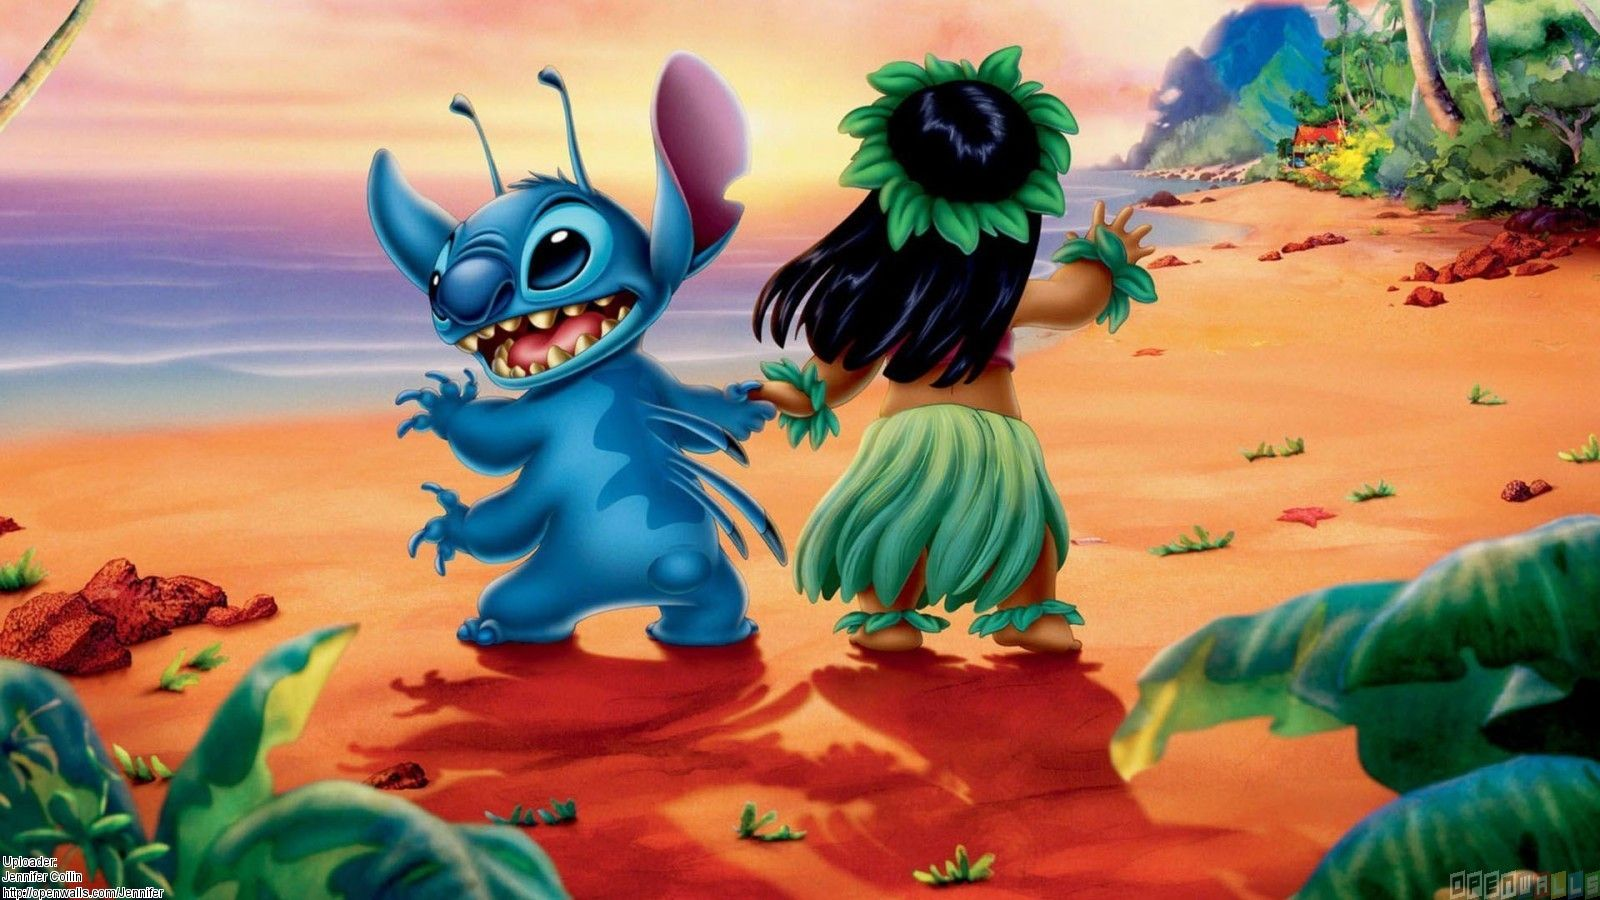 Lilo And Stitch Wallpaper HD For IPhone Android IPhoneLovely 1600x900